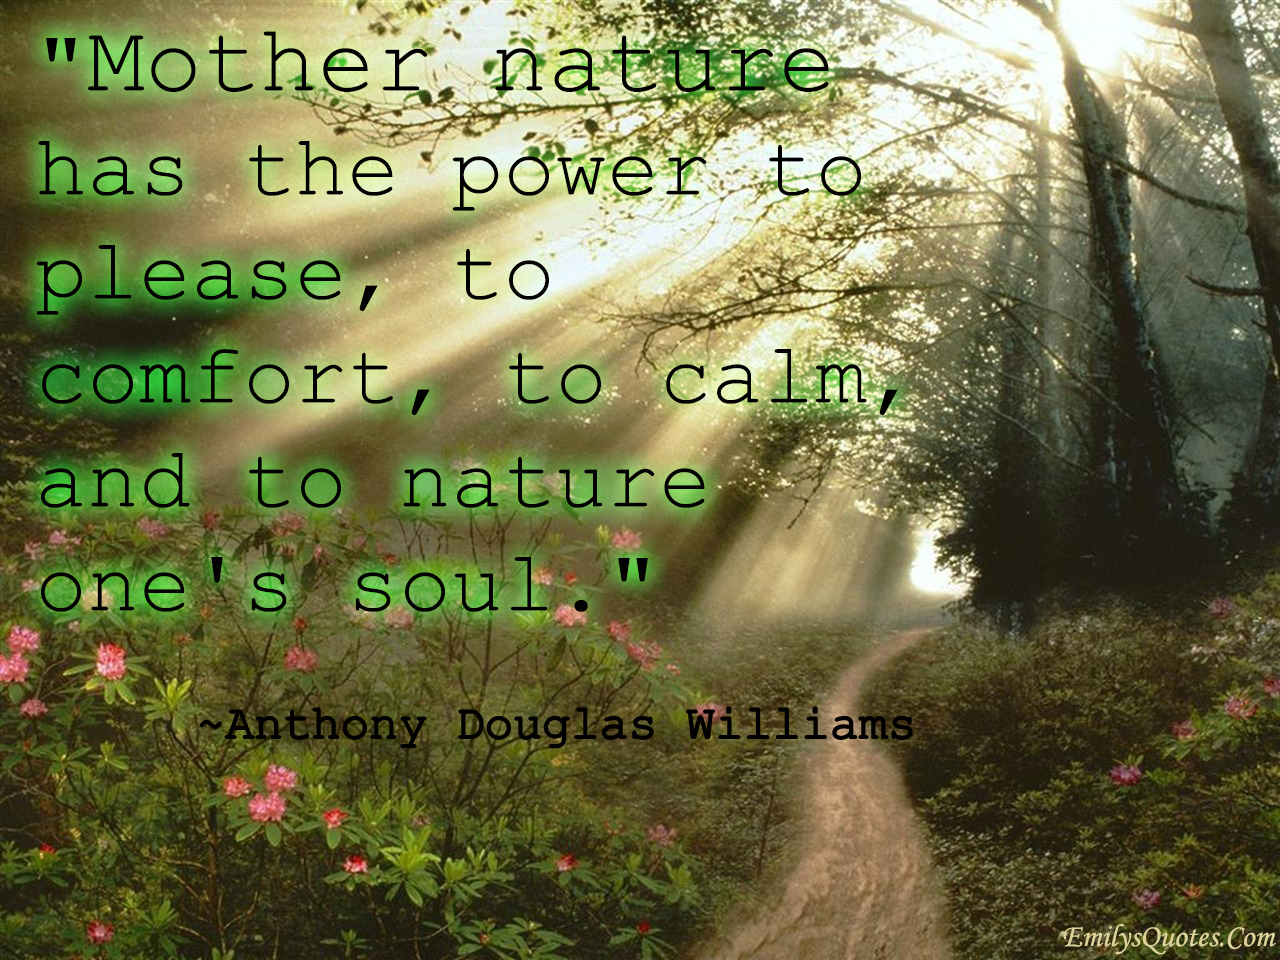 EmilysQuotes.Com - positive, nature, power, change, Anthony Douglas Williams